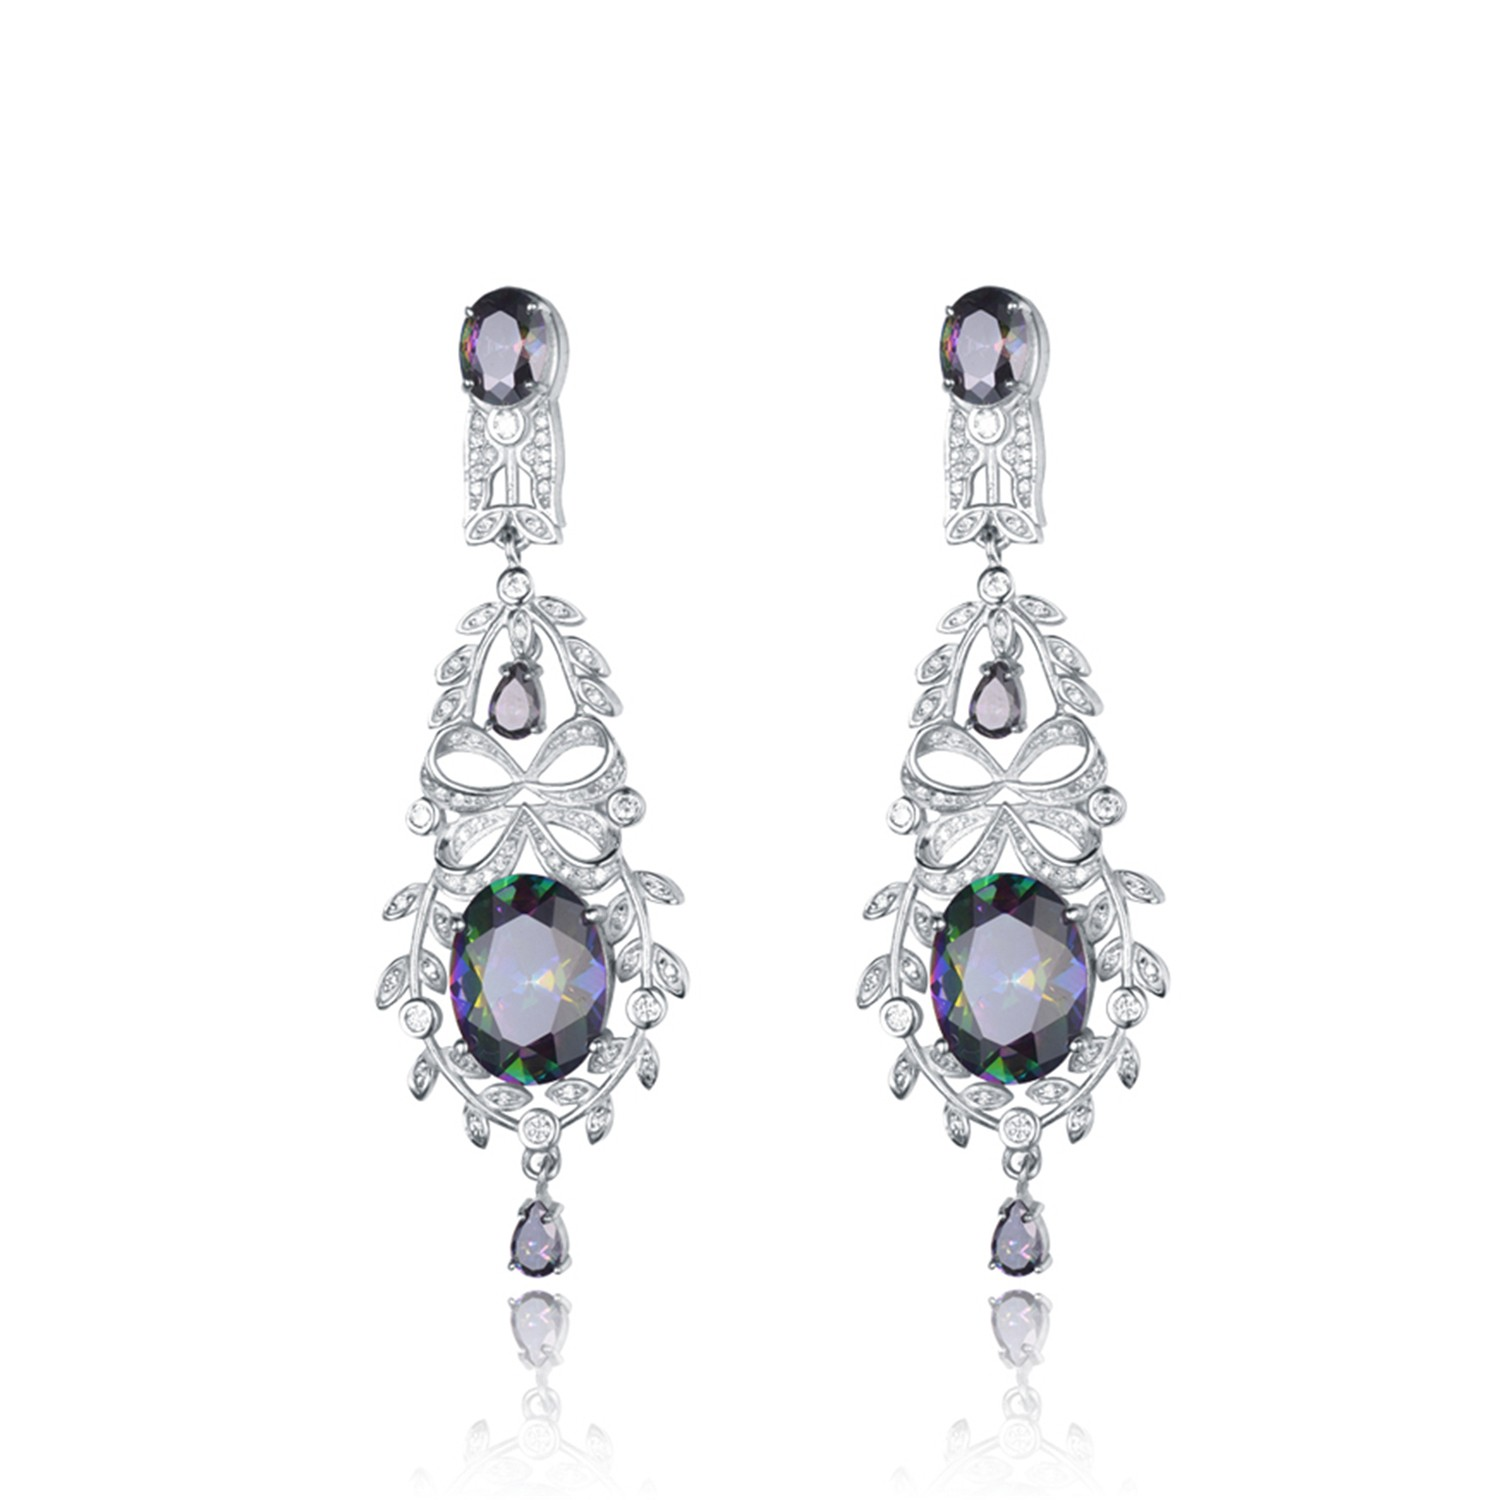 Cubic Zirconia jewelry silver plated earrings women hot sale drop earrings